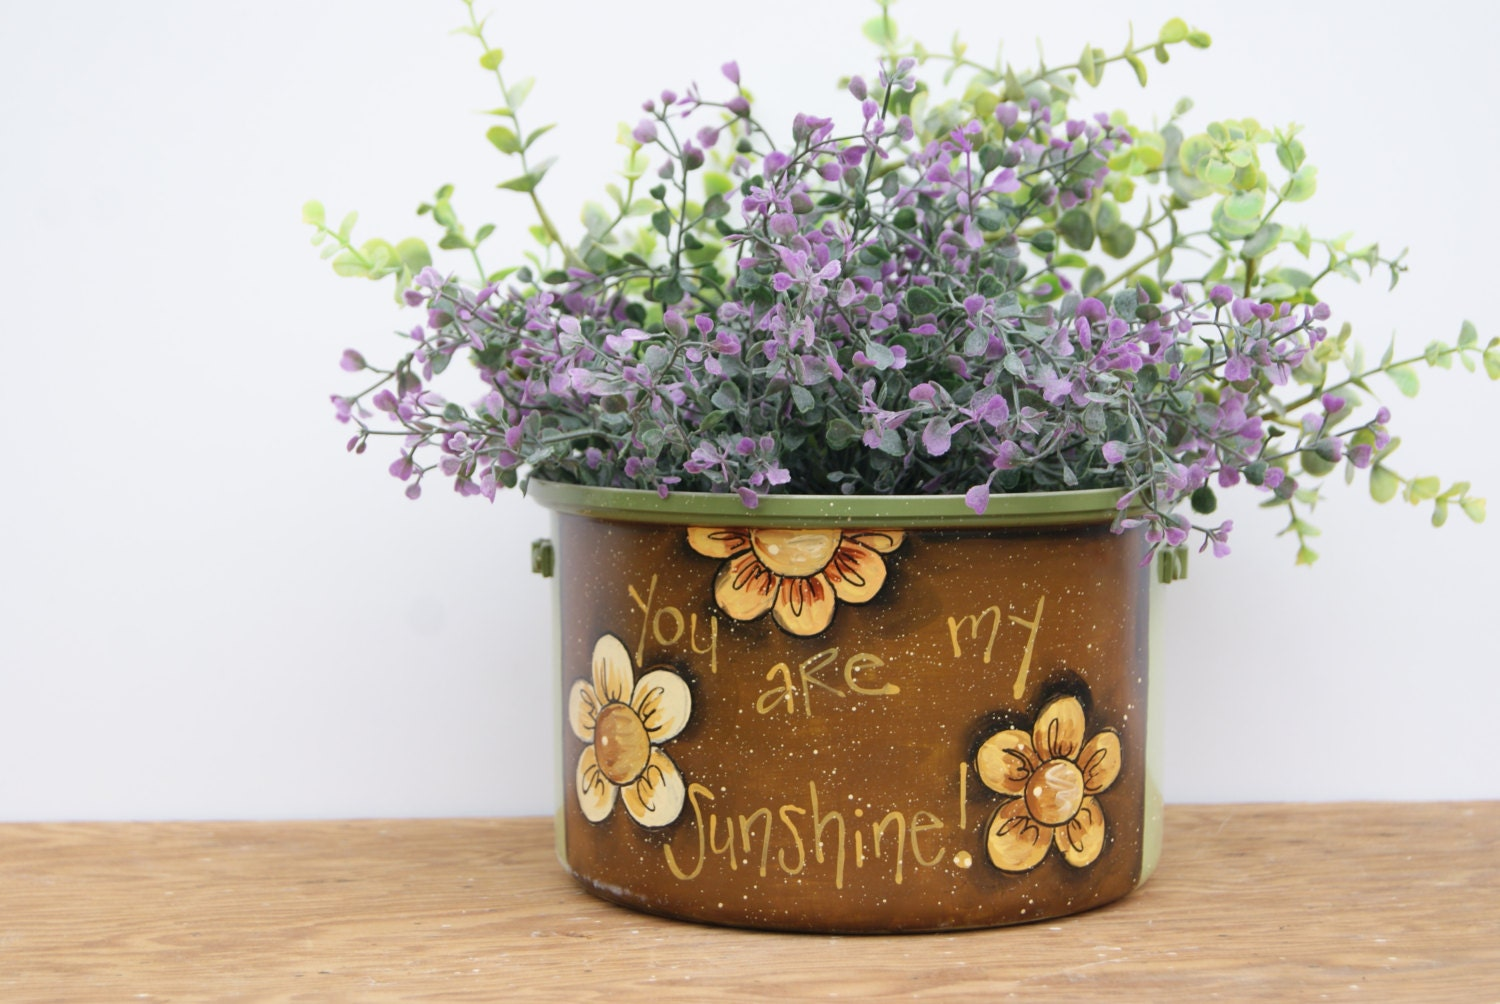 Https Www Etsy Com Listing 228024336 Sage Flower Pot Kitchen Decor Hand